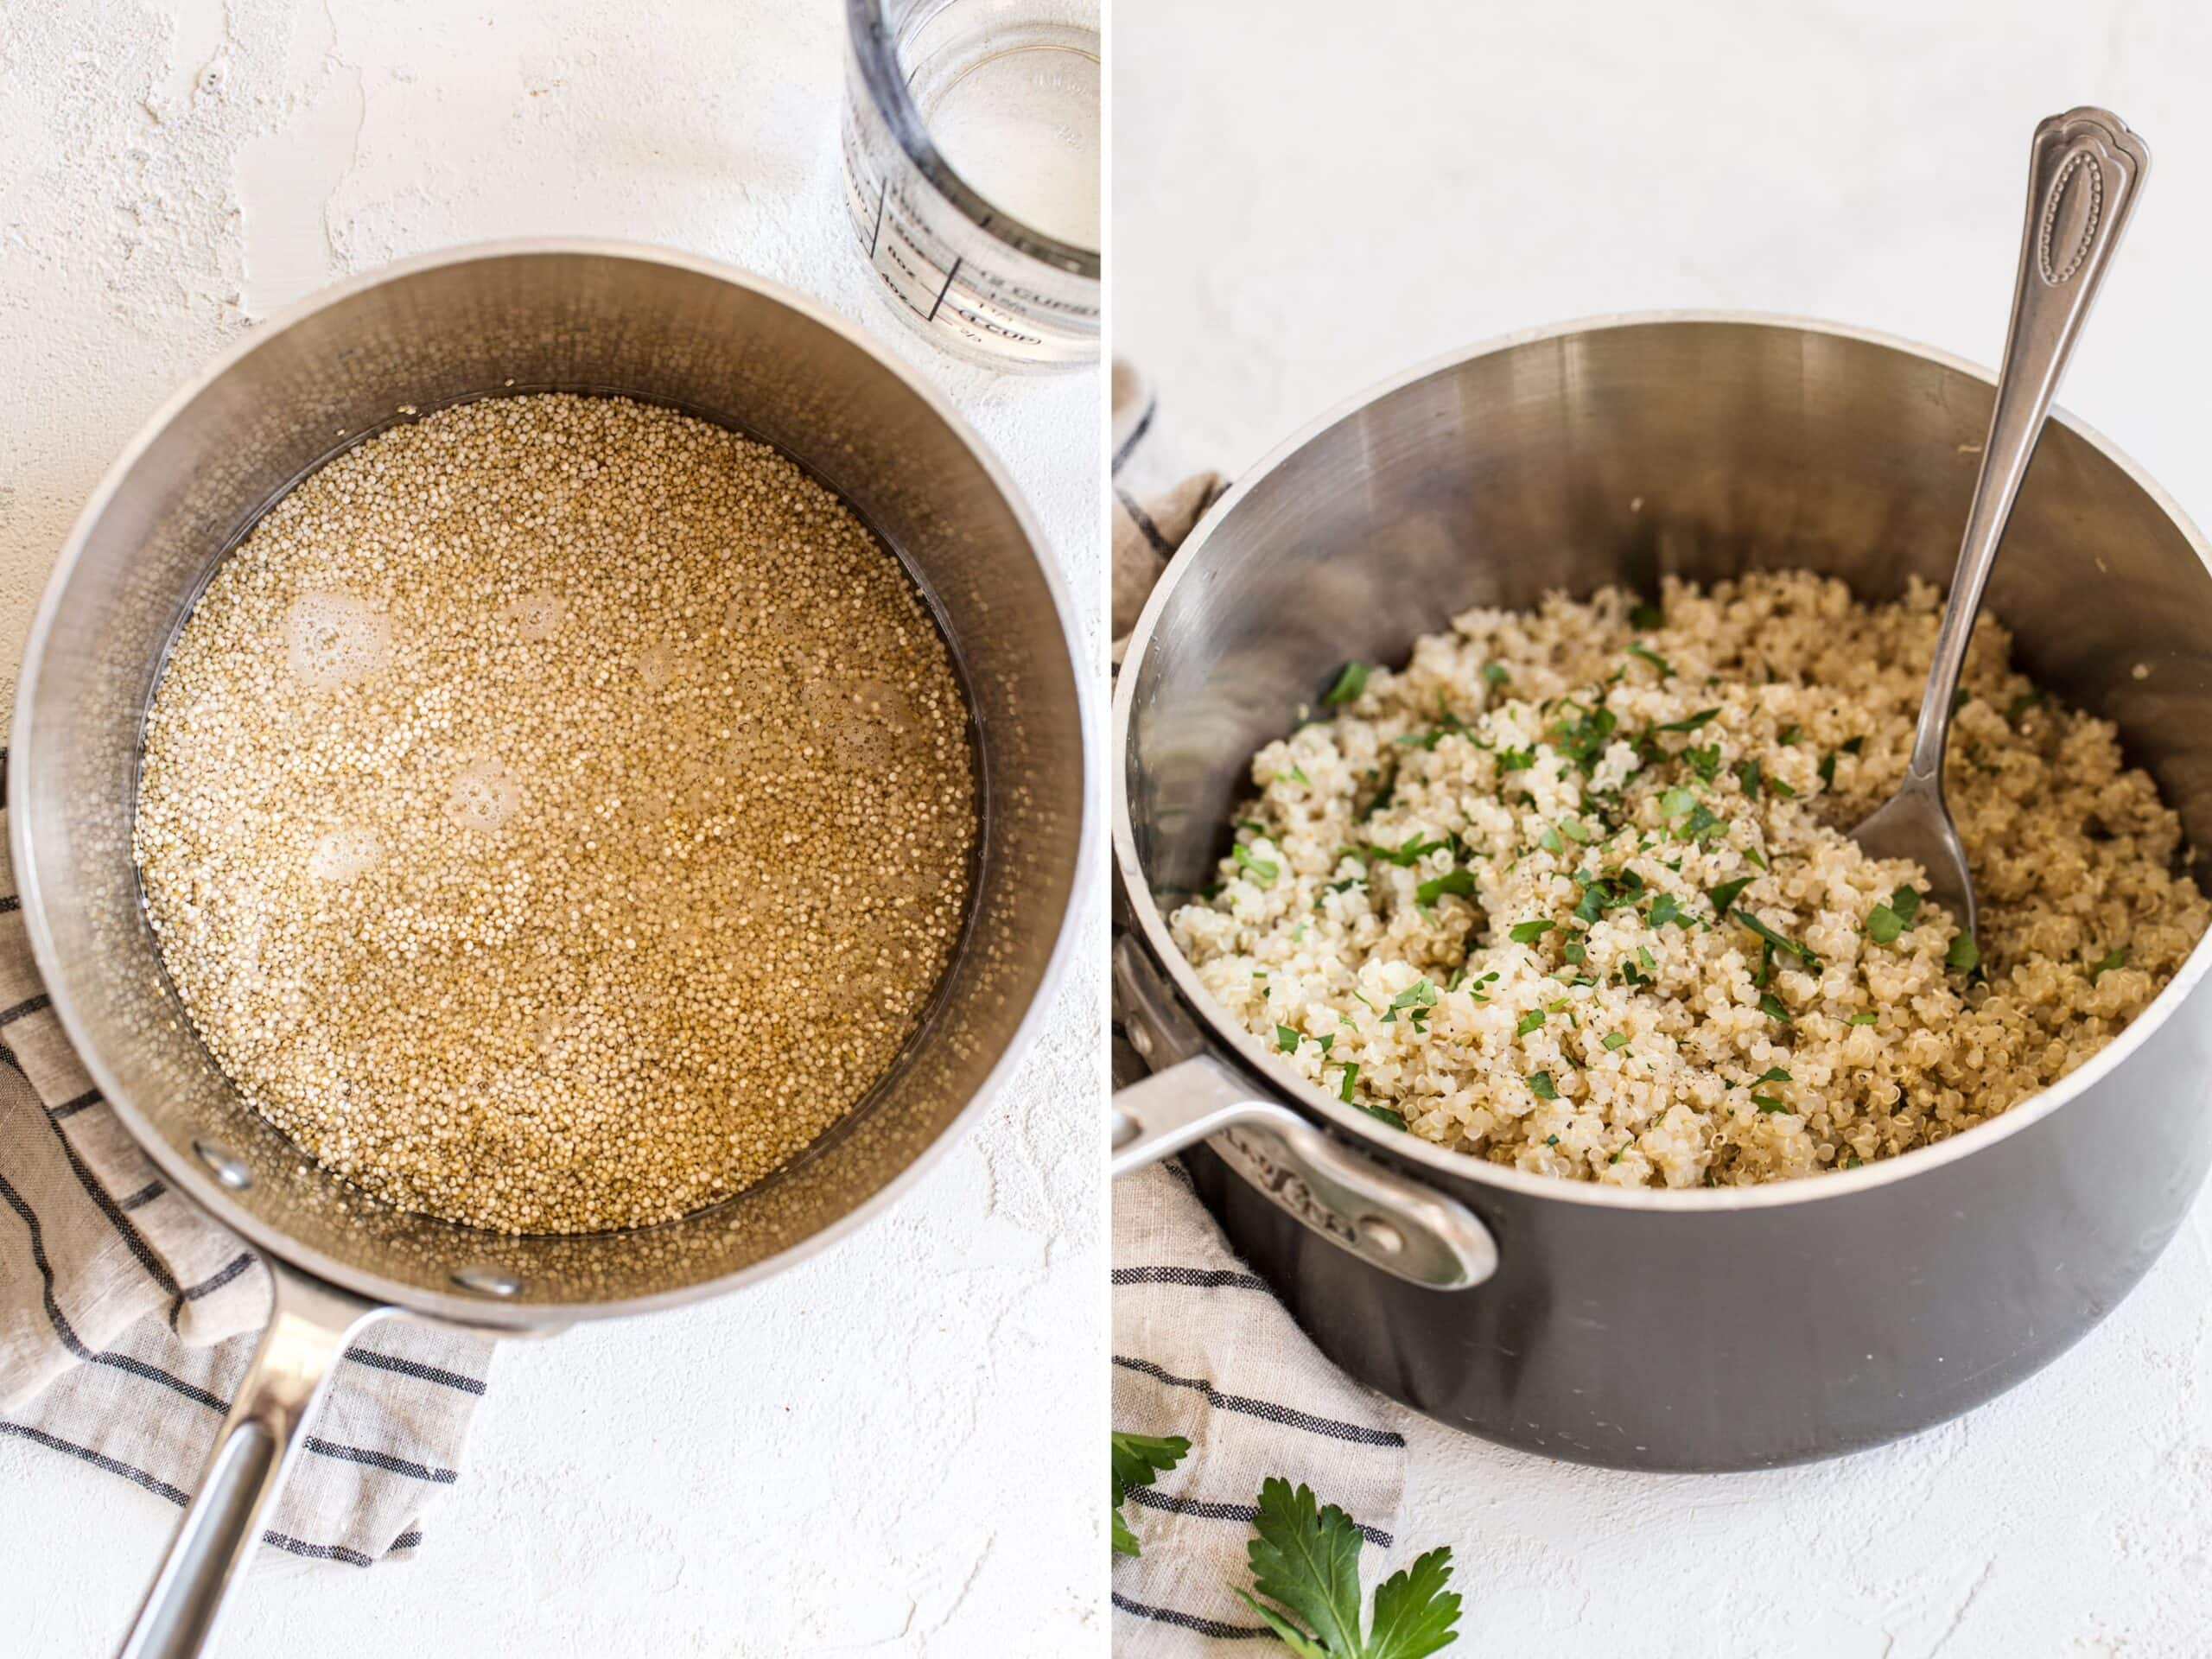 Side by side photos. One is of quinoa and water in a pot. The second is of cooked quinoa in a pot with a spoon and topped with parsley.